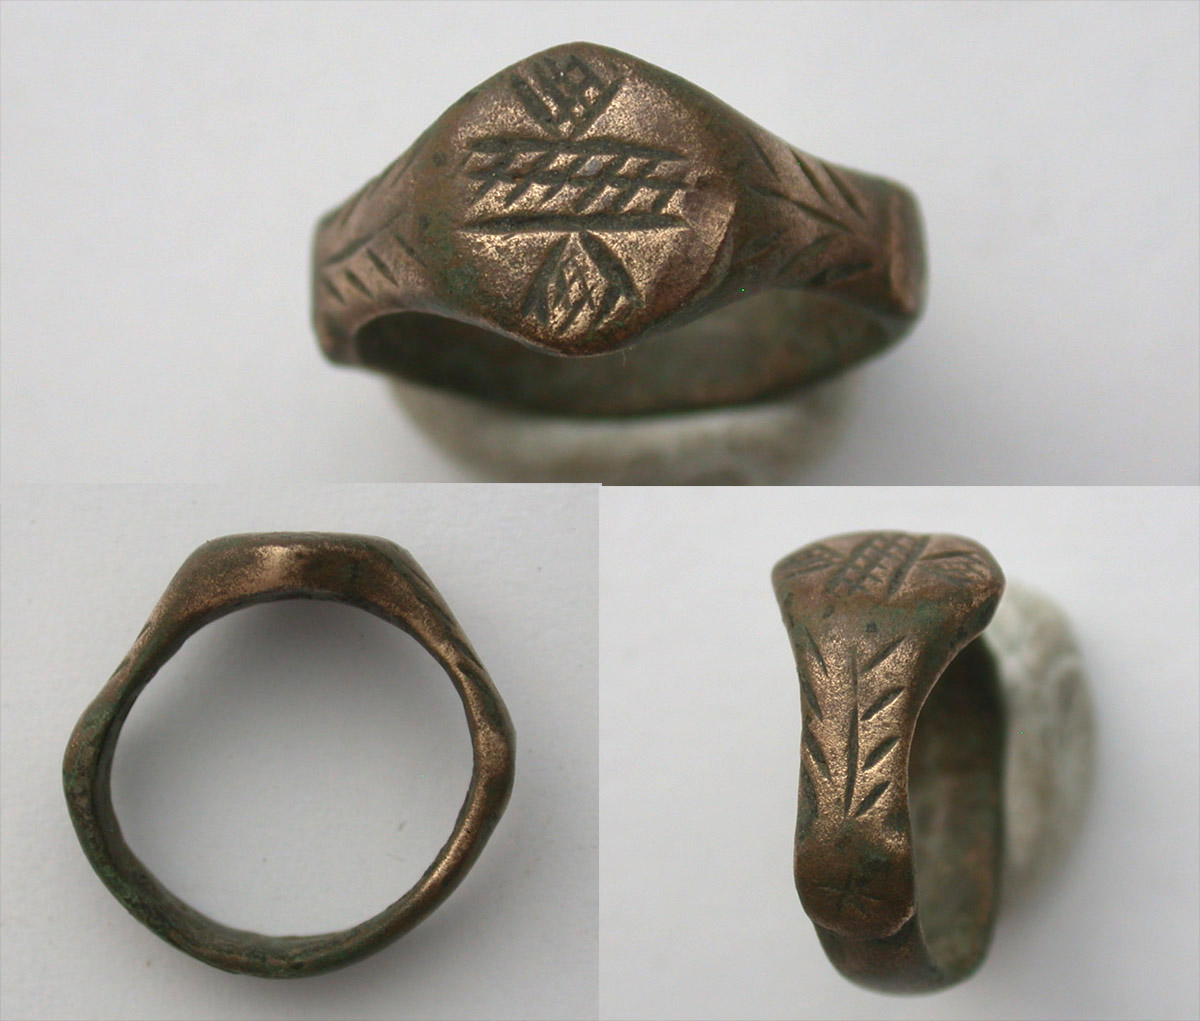 Ring, Roman, Ladies, River and Mountain motif, c. 3rd Cent